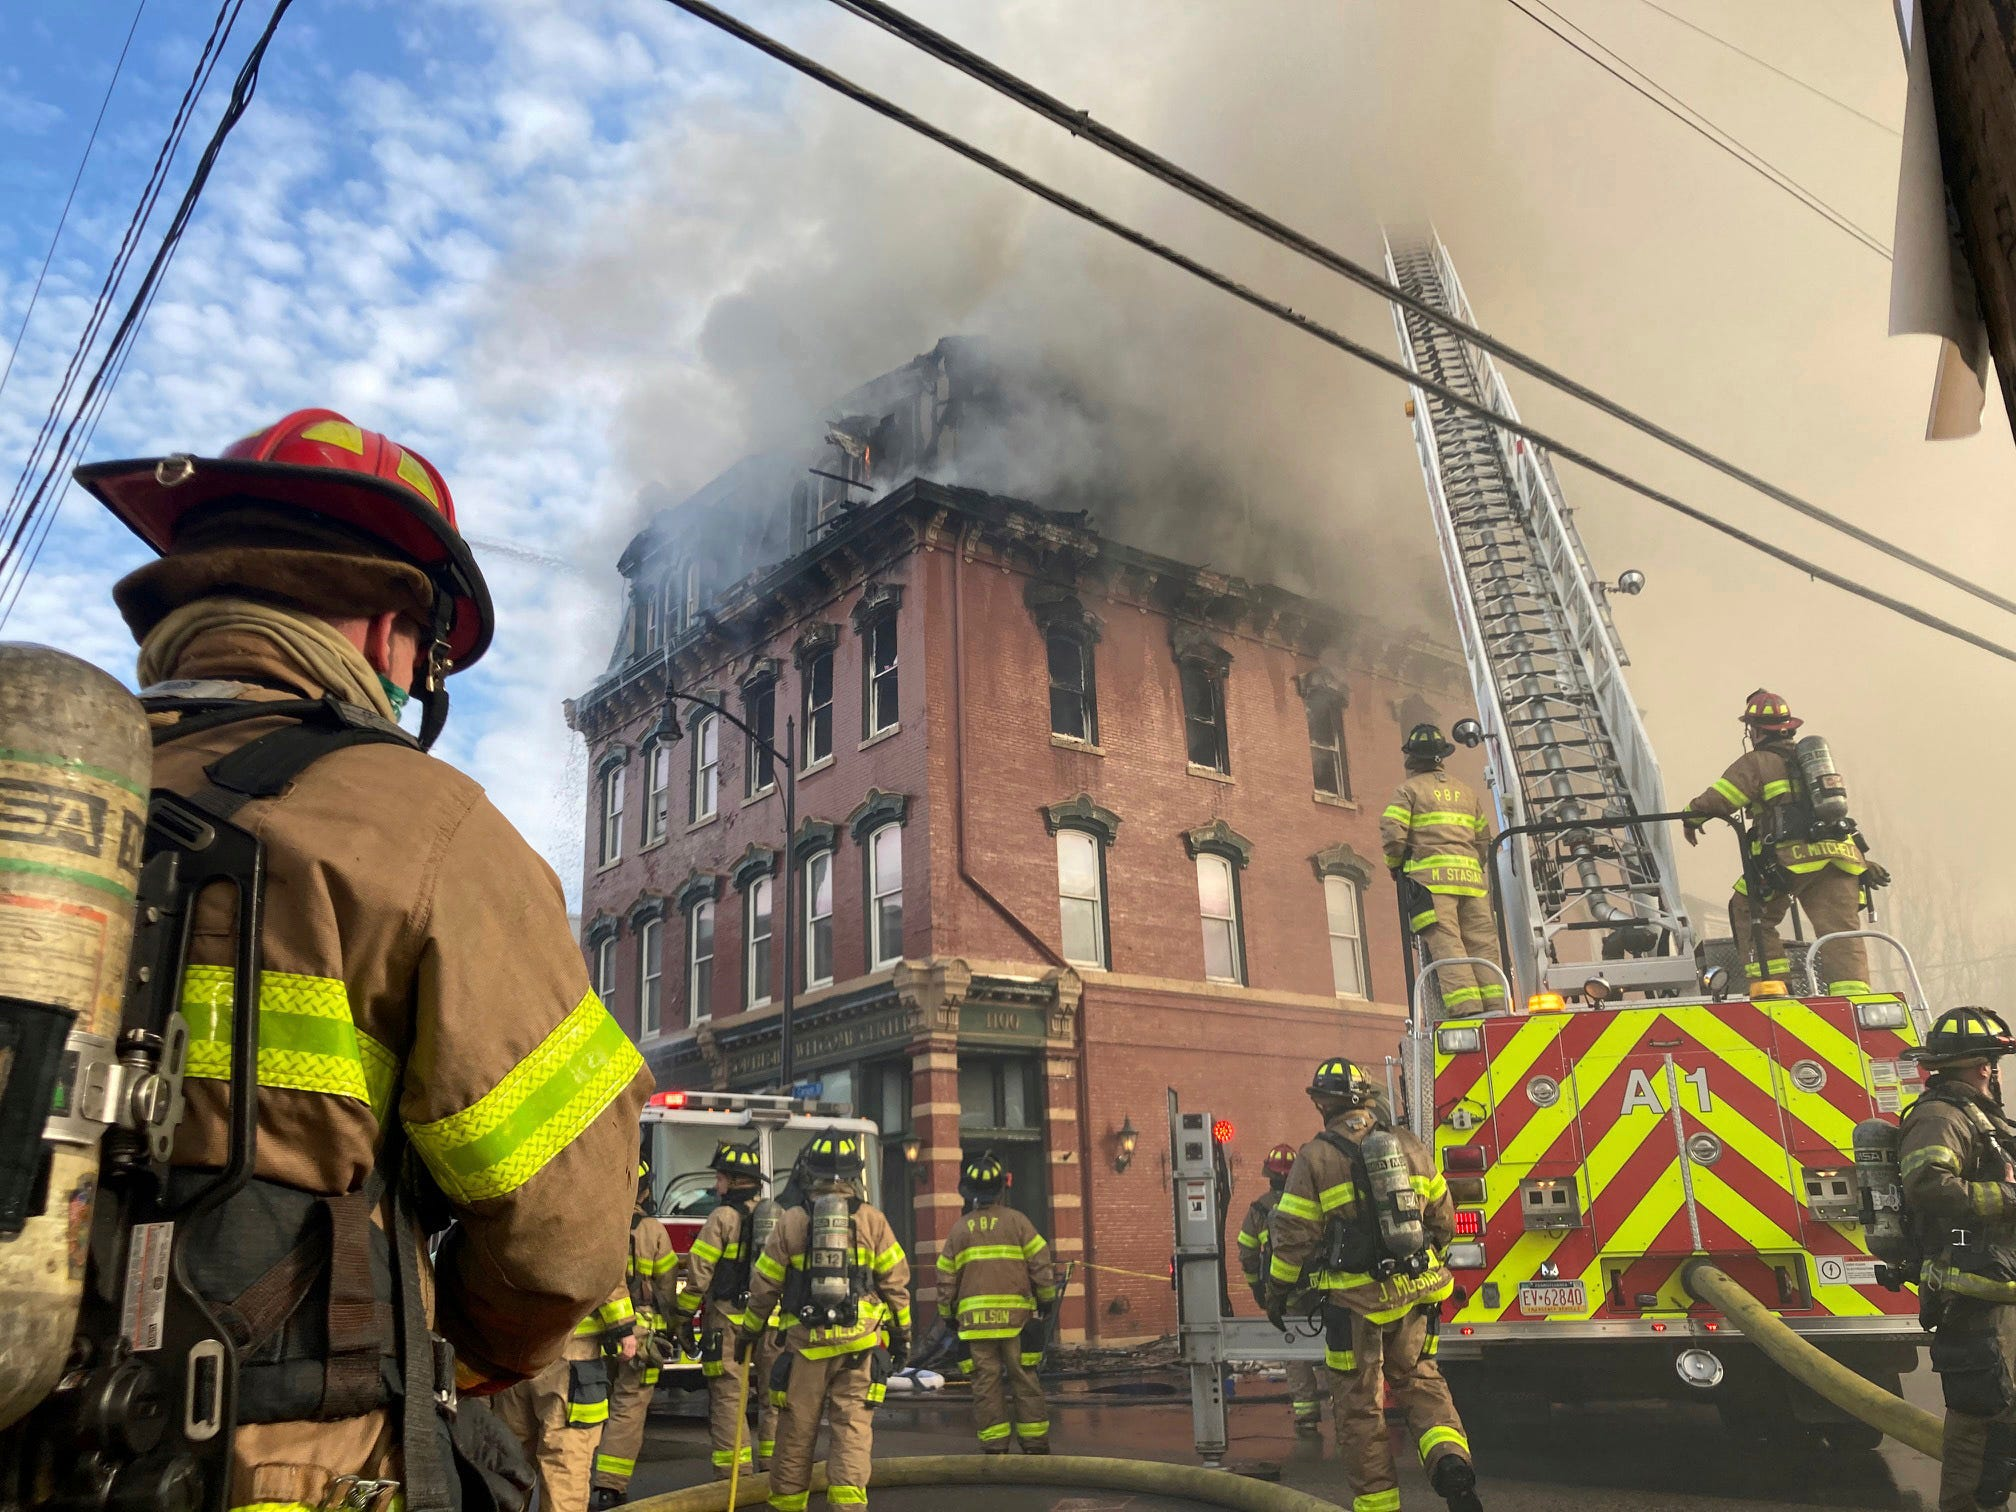 Pittsburgh loses  a piece of history : Fire ravages 1800s building, likely dooming it to destruction